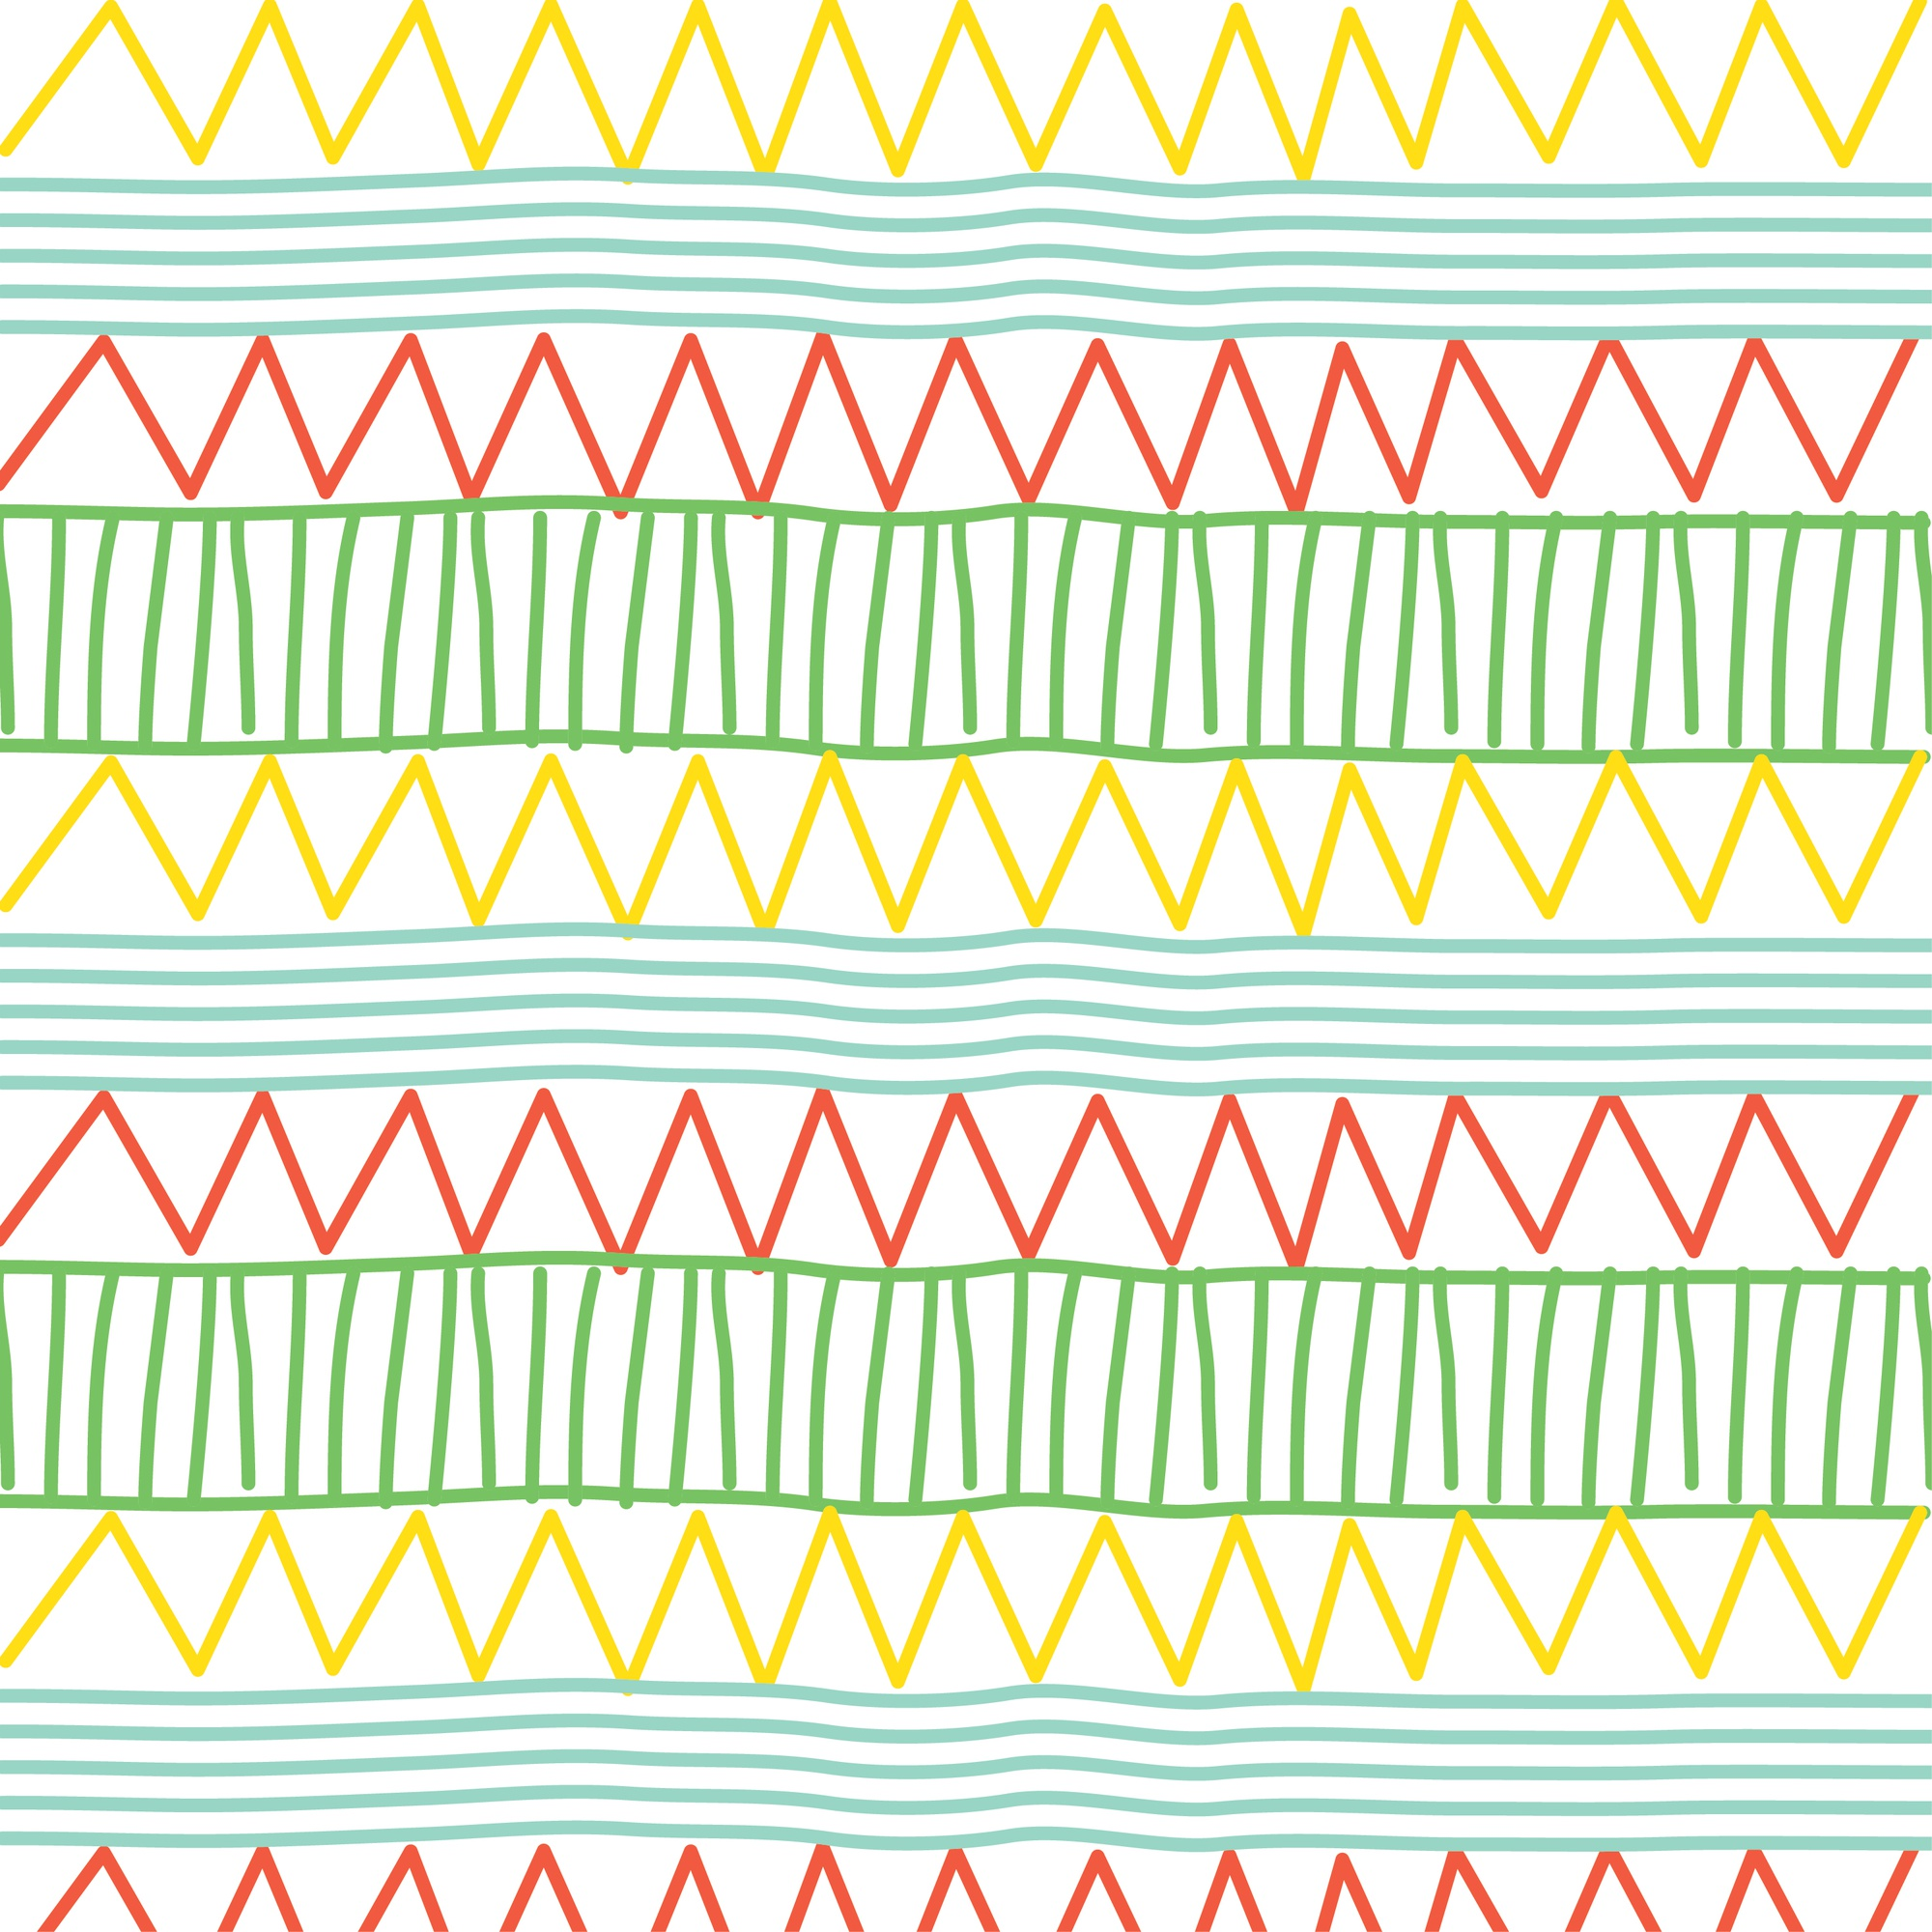 Line and zigzag pattern